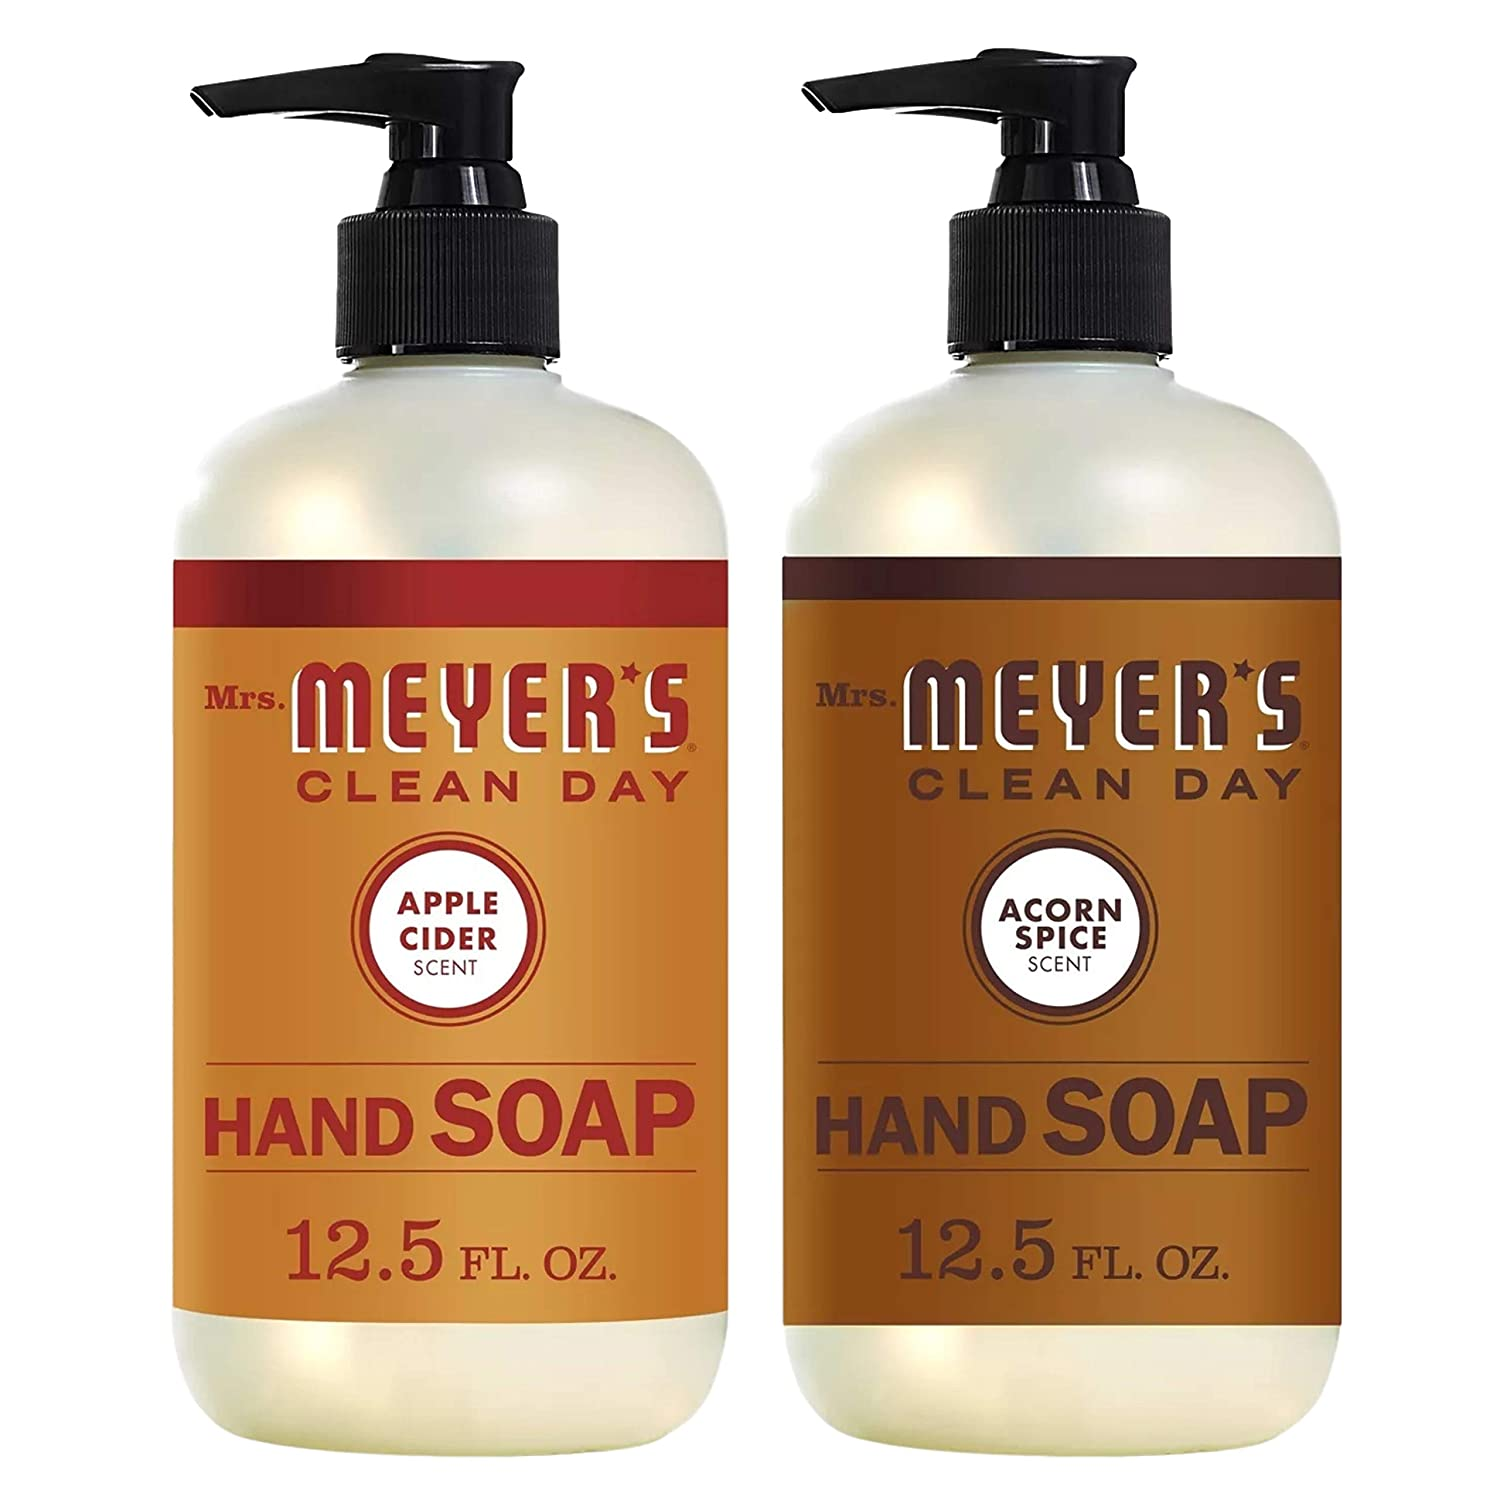 Mrs Meyers Clean Day Hand Soap- Apple Cider Bundle With Acorn Spice 12.5 Fl Oz ( 2 Bottles )